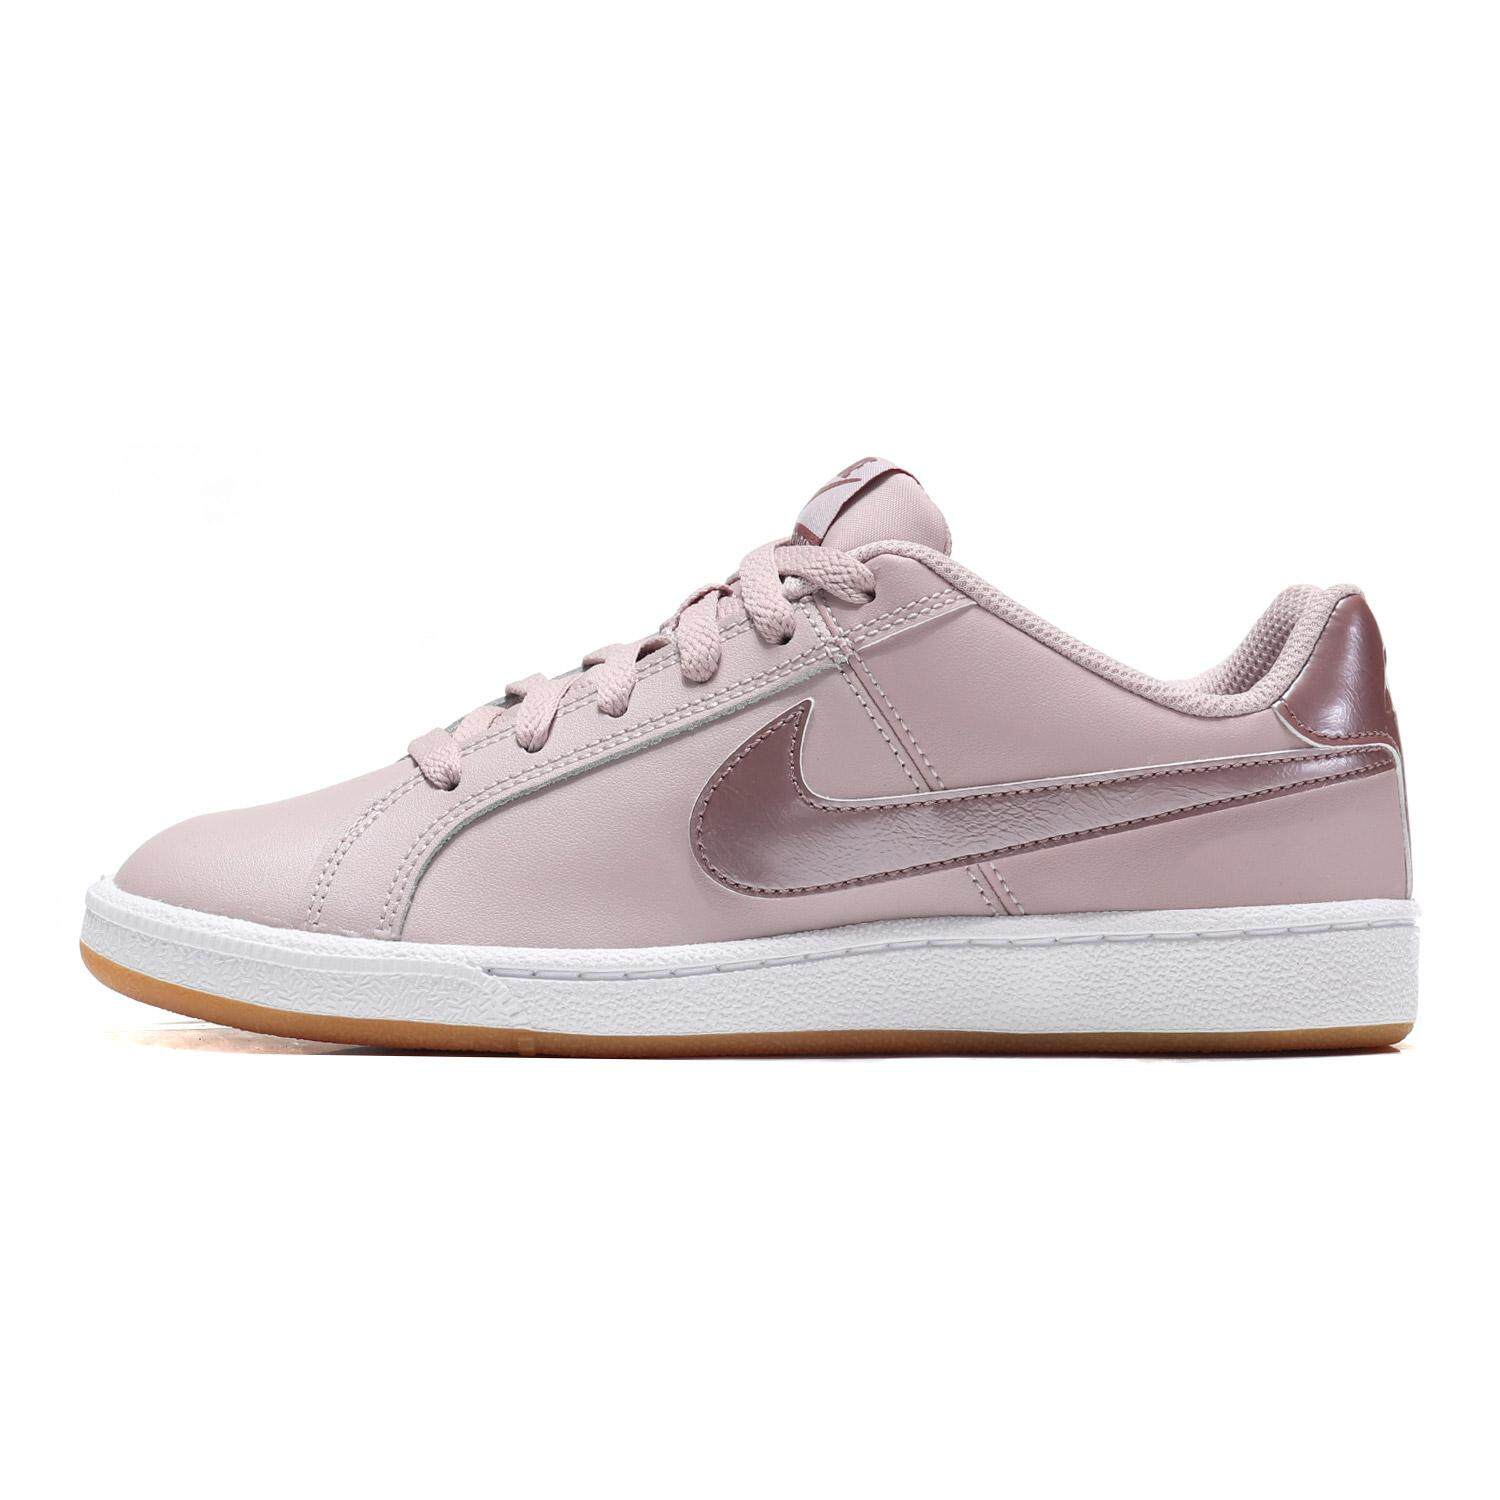 quality design a3817 485b7 Nike Court Royale men and women low-top sports couple casual shoes white  shoes 749867